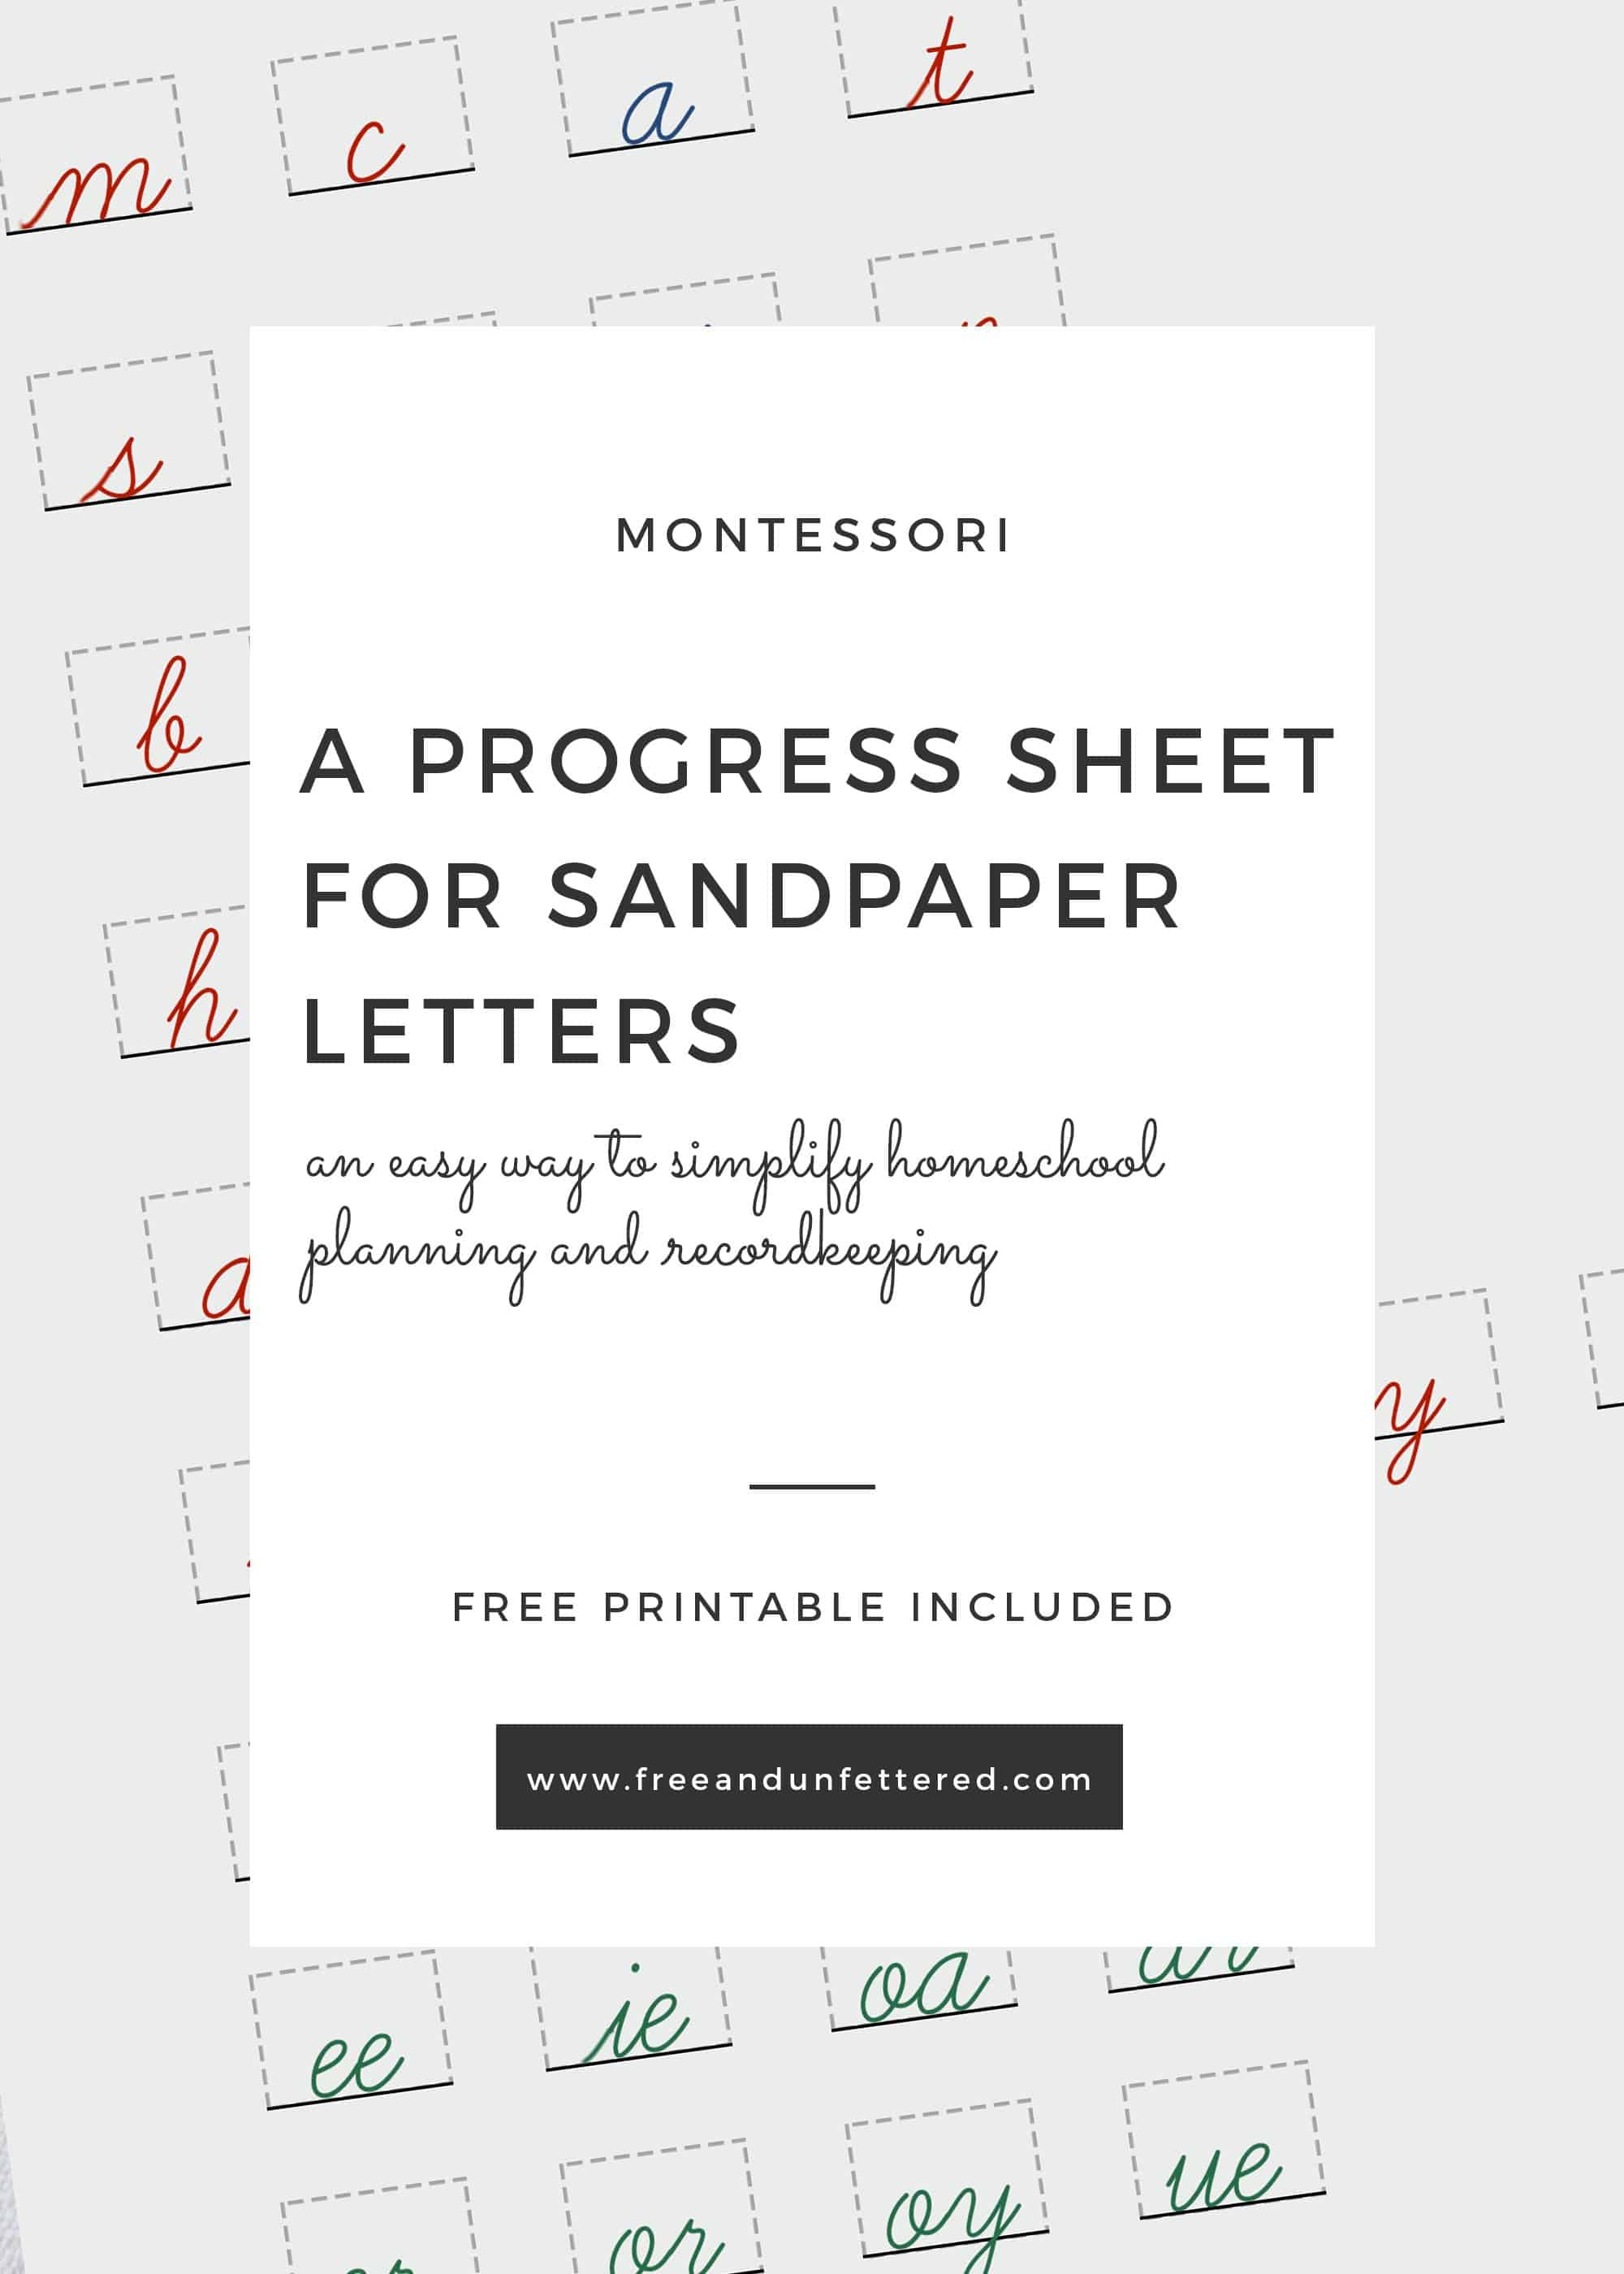 photo regarding Free Printable Homeschool Record Keeping Forms known as Incorporating Sandpaper Letters: A Cost-free Breakthroughs Sheet in the direction of